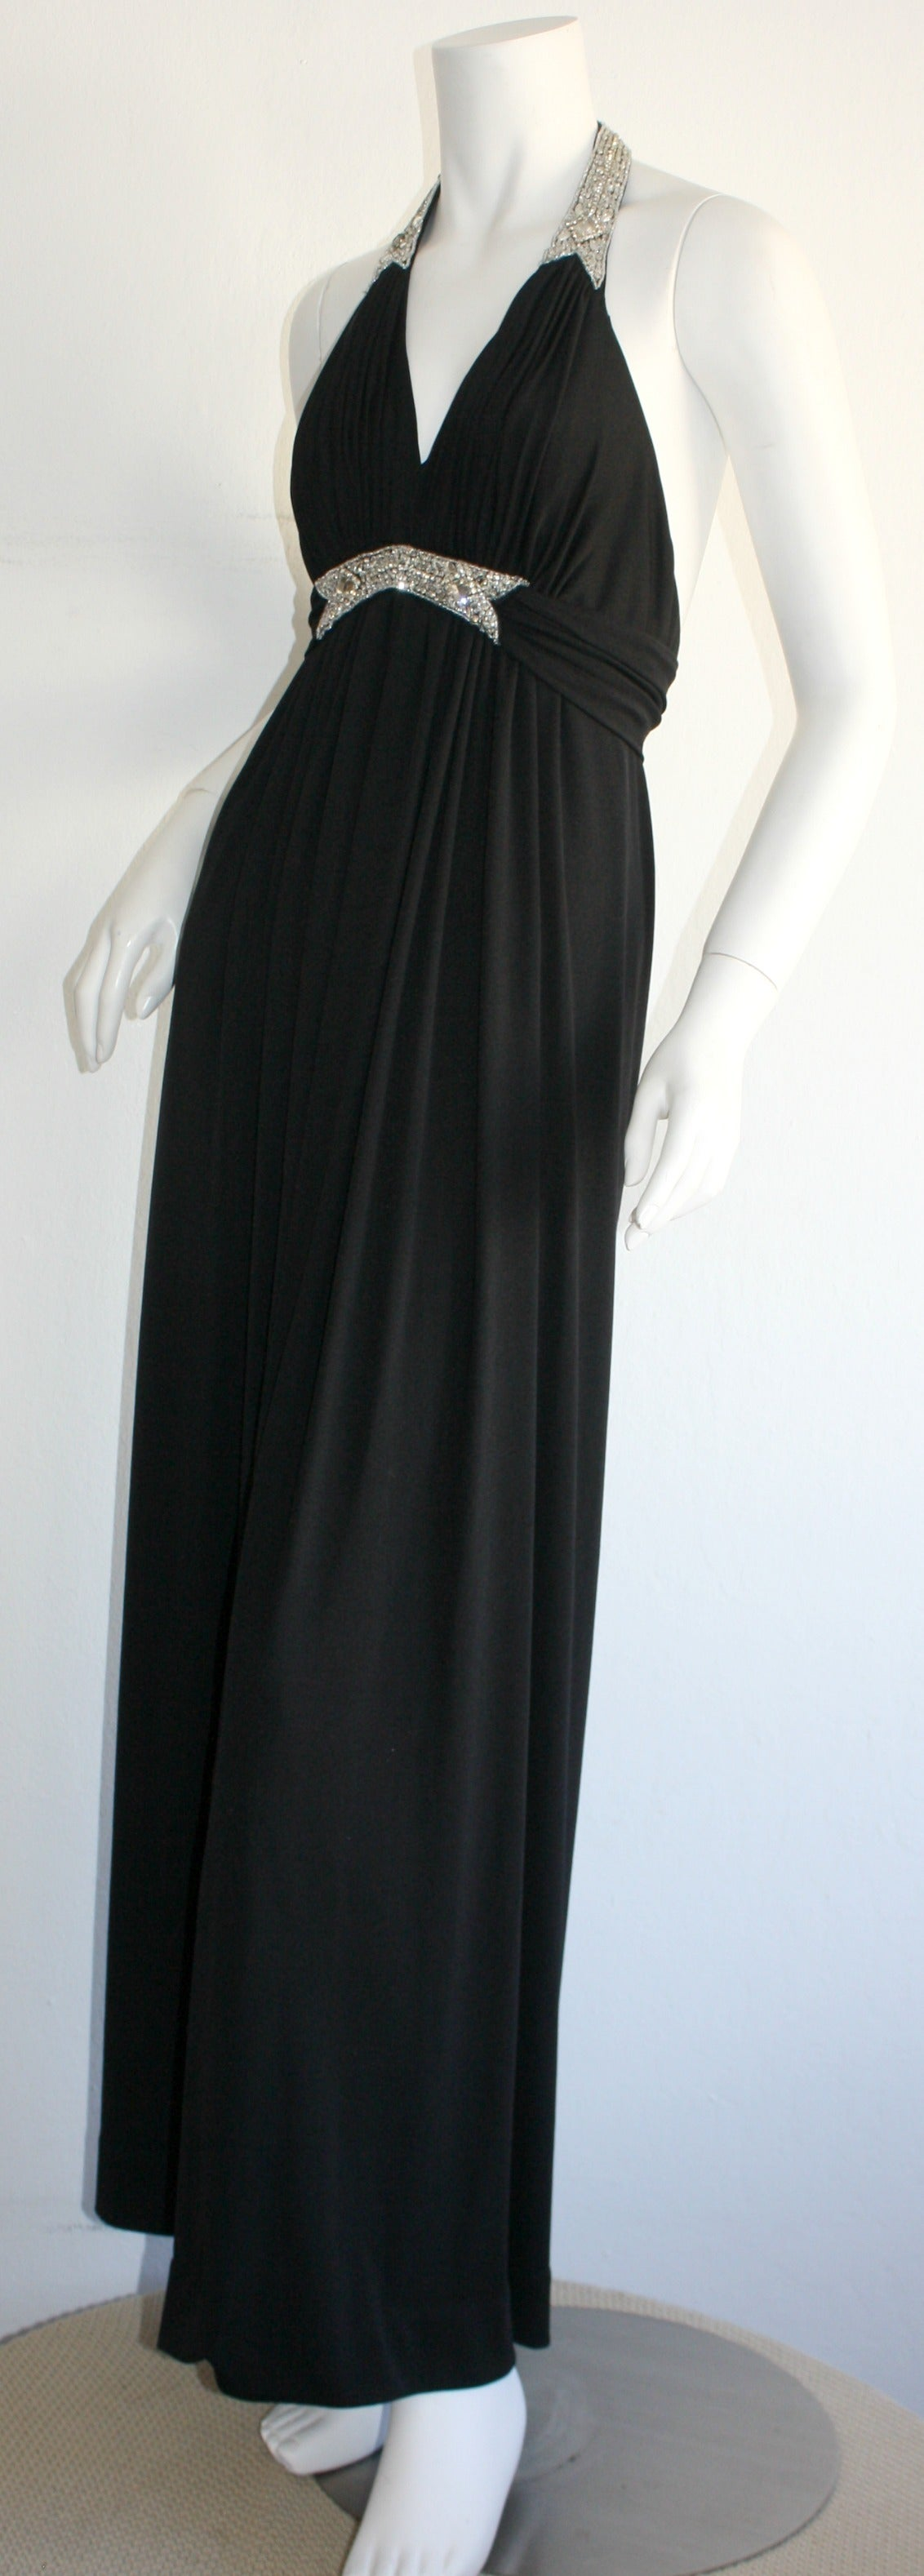 Stunning 1970s Vintage Victoria Royal Black Halter Diamanté Jersey Dress For Sale 3